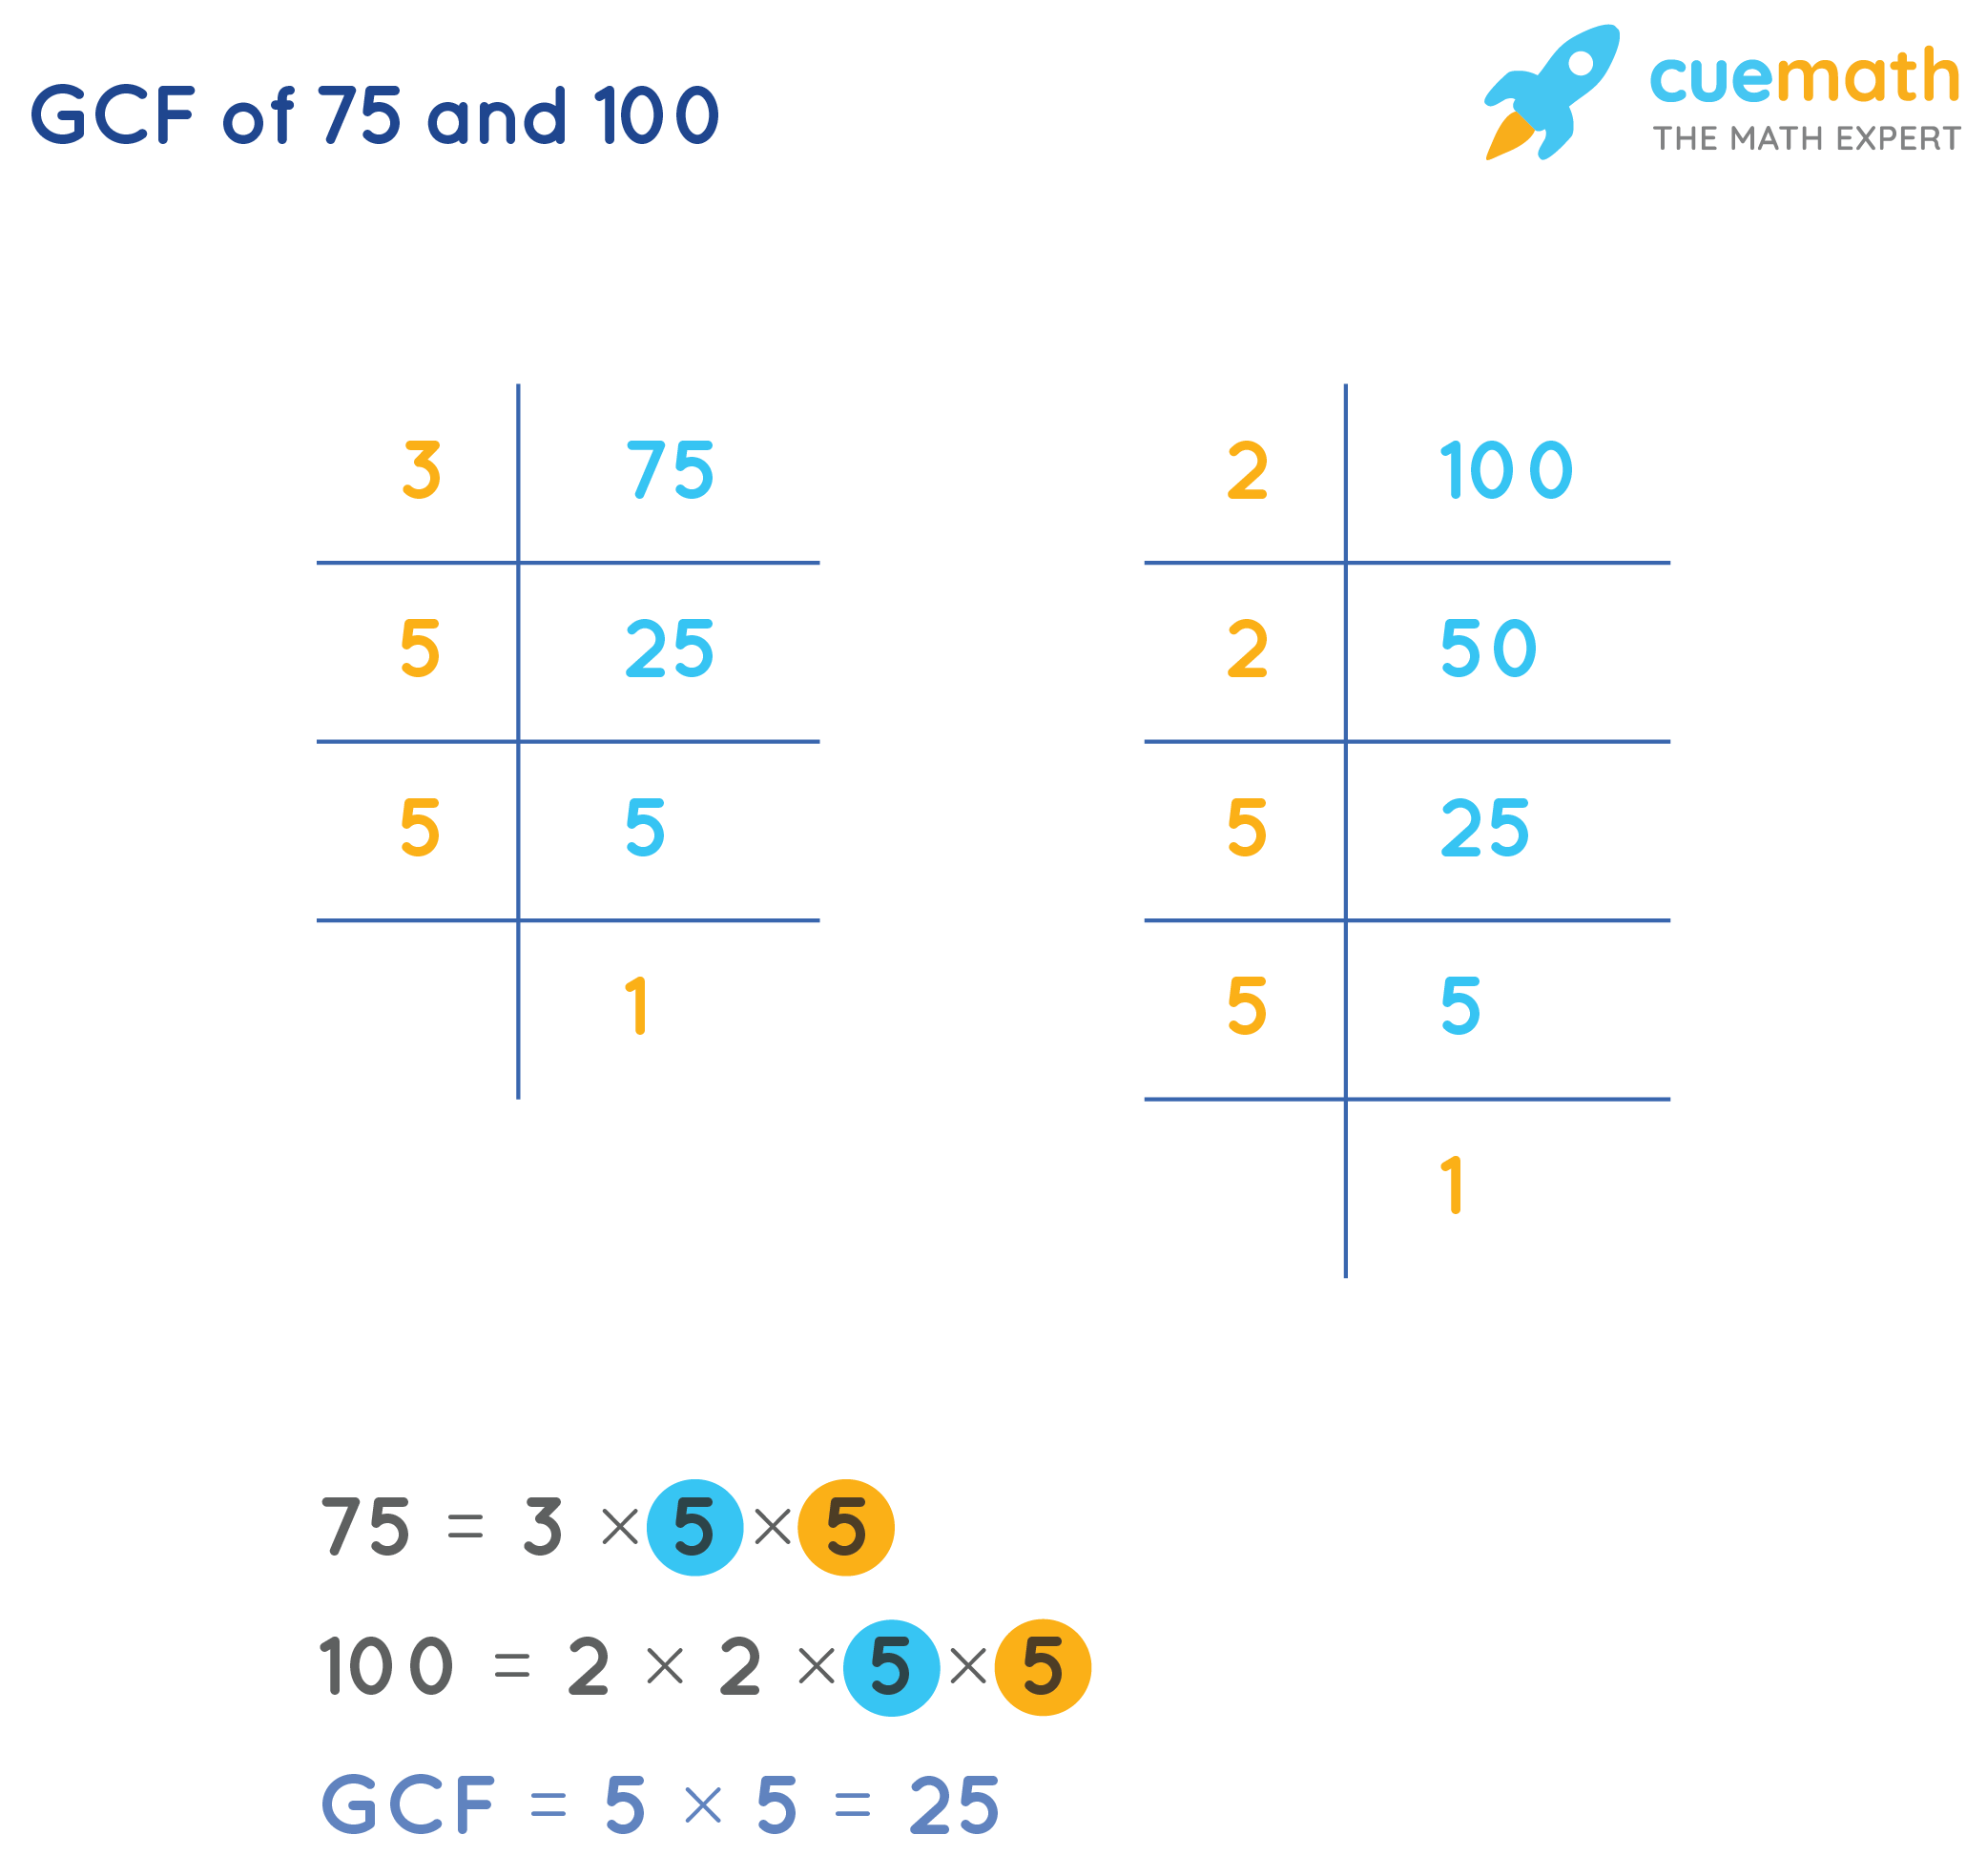 GCF of 75 and 100 by prime factorization